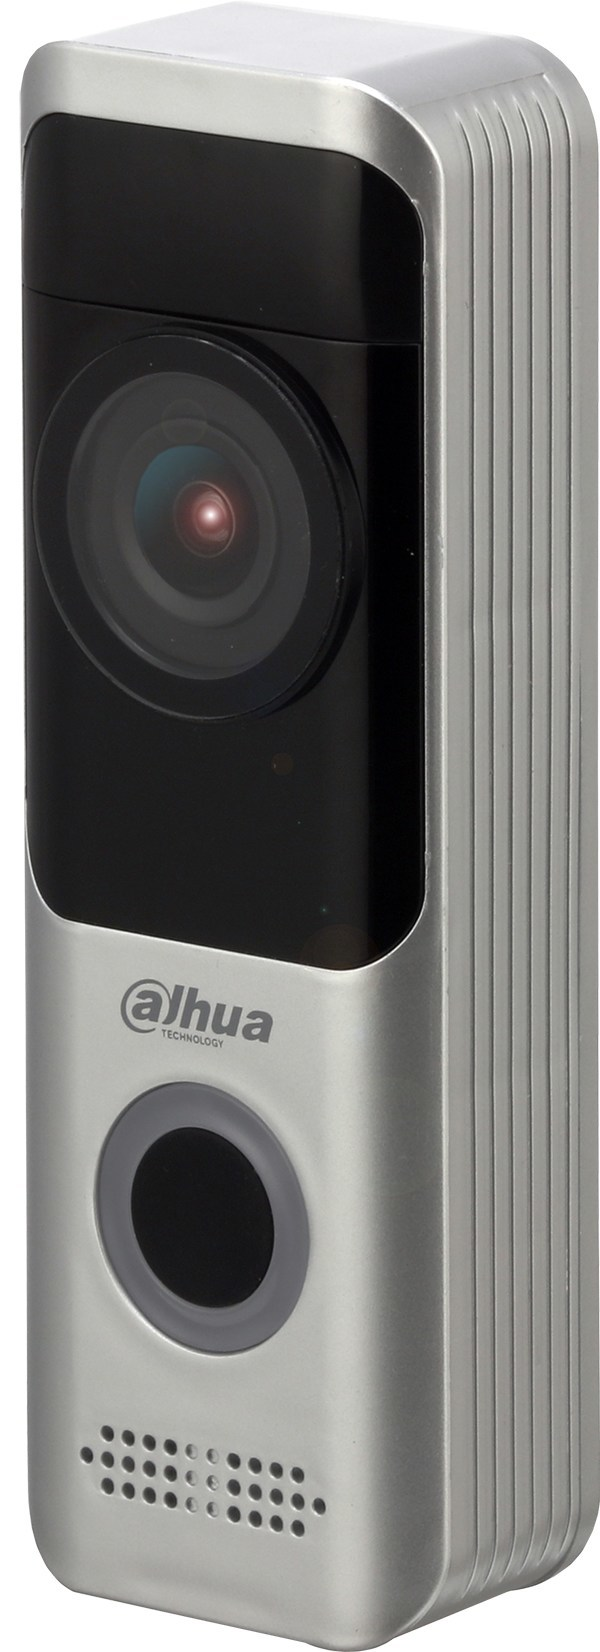 Dahua Battery Powered Wi-Fi Video Doorbell - DB10 (PRNewsfoto/Dahua Technology)